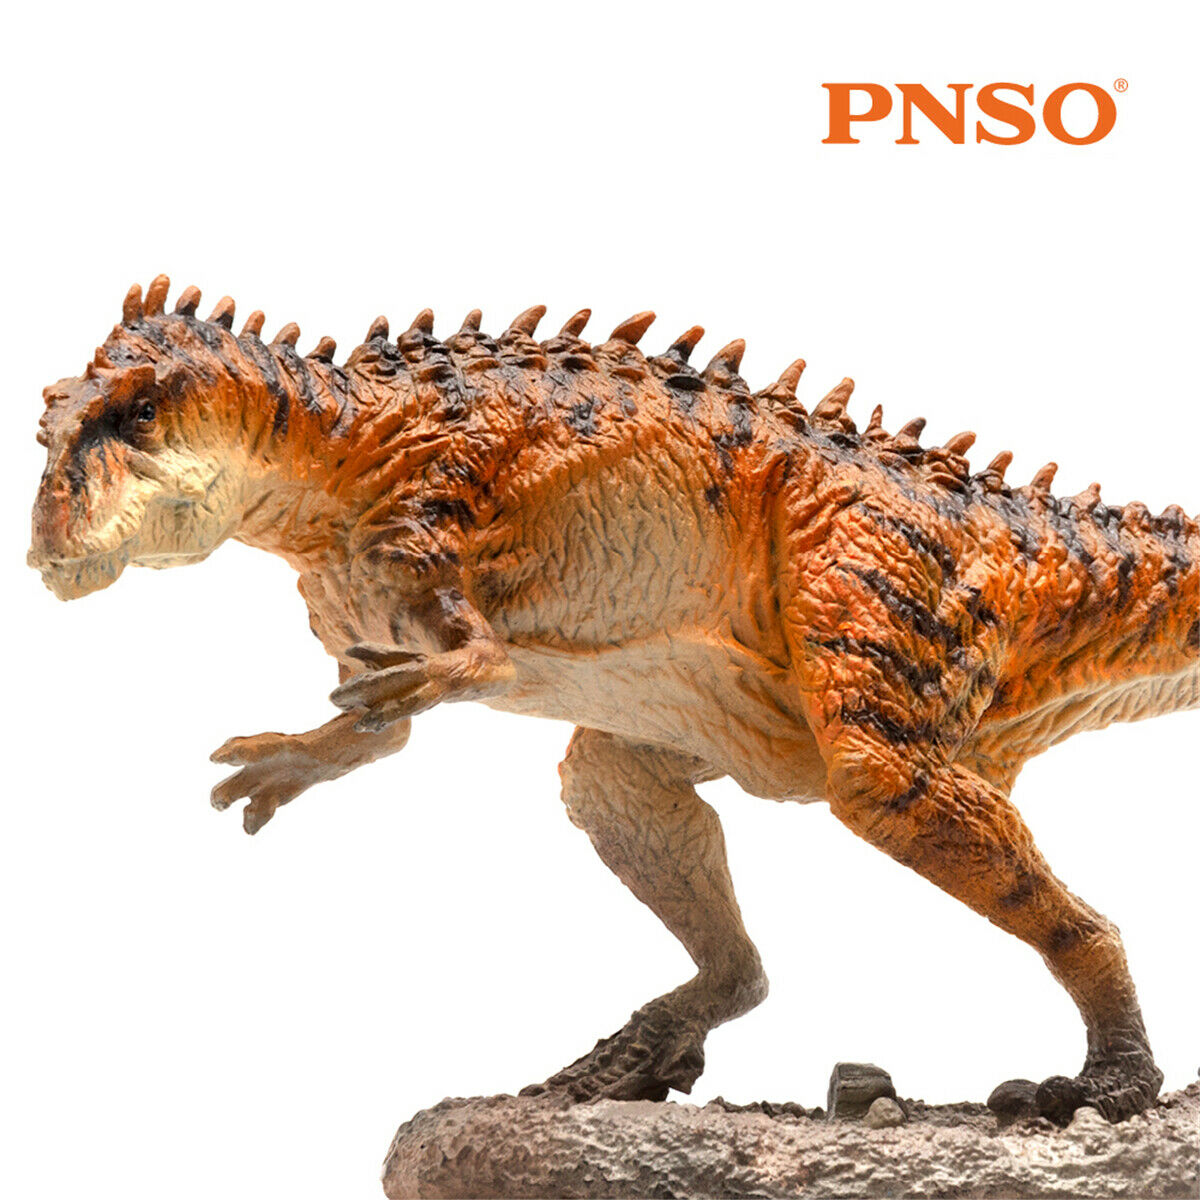 PNSO Yangchuanosaurus Dinosaur Figure Chuanosaurus Collector Animal Adult Kids Collection Science Education Toy Gift Home Decor